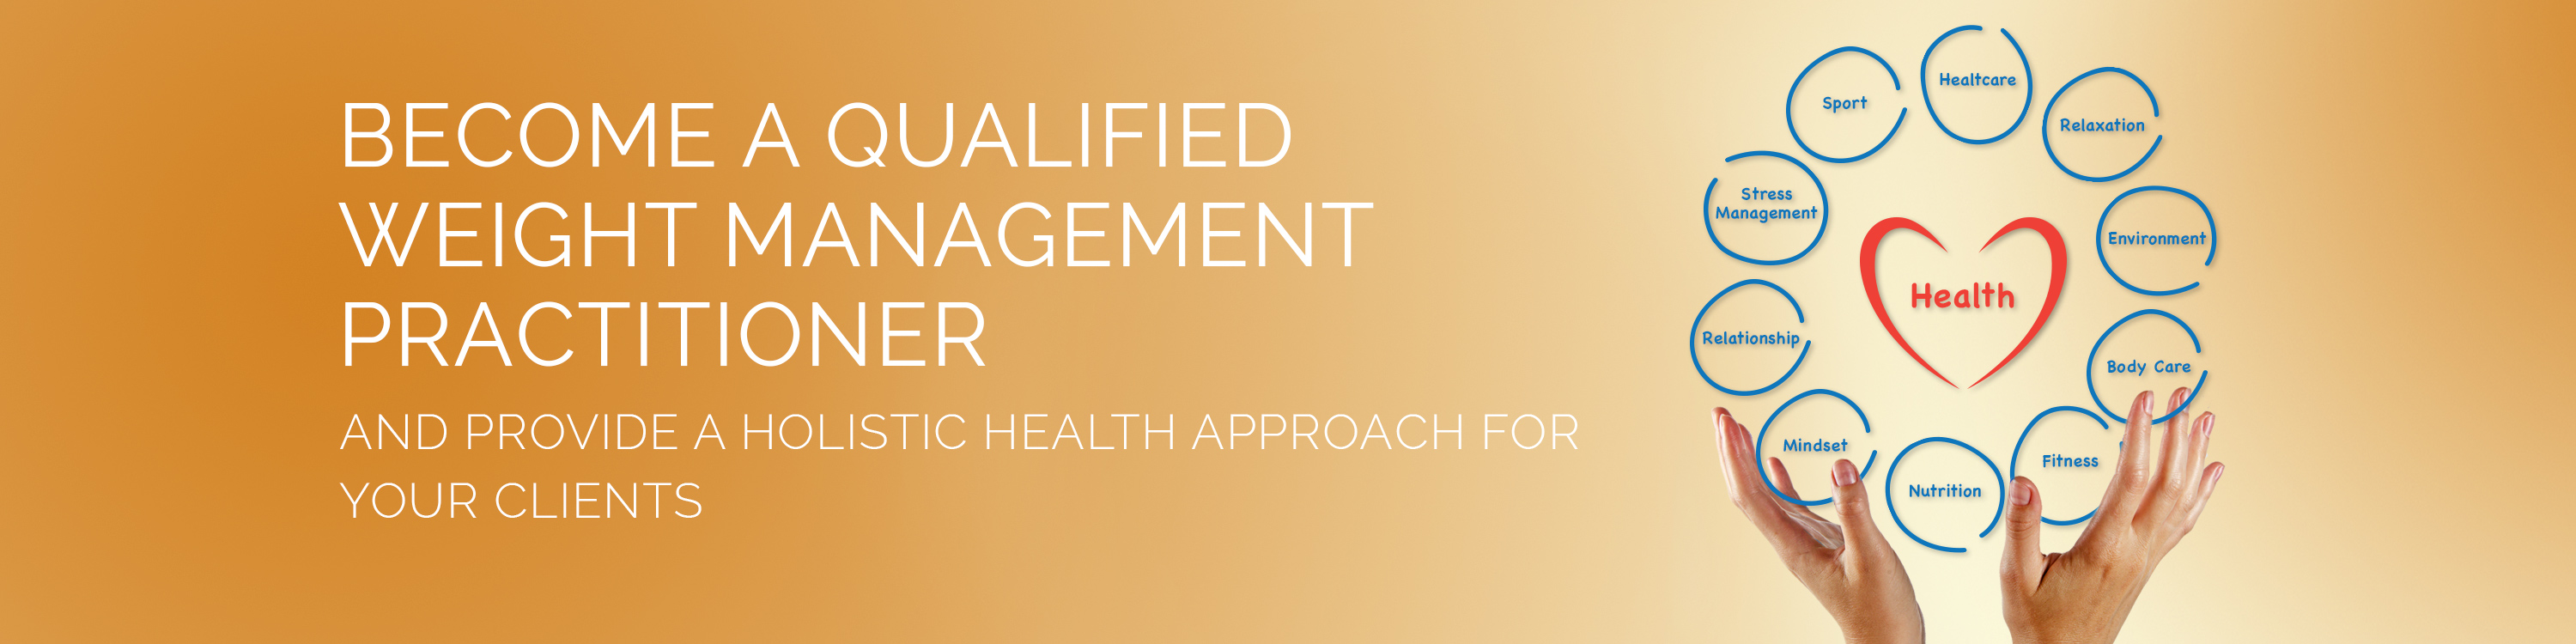 Become a Qualified Weight Management Practitioner